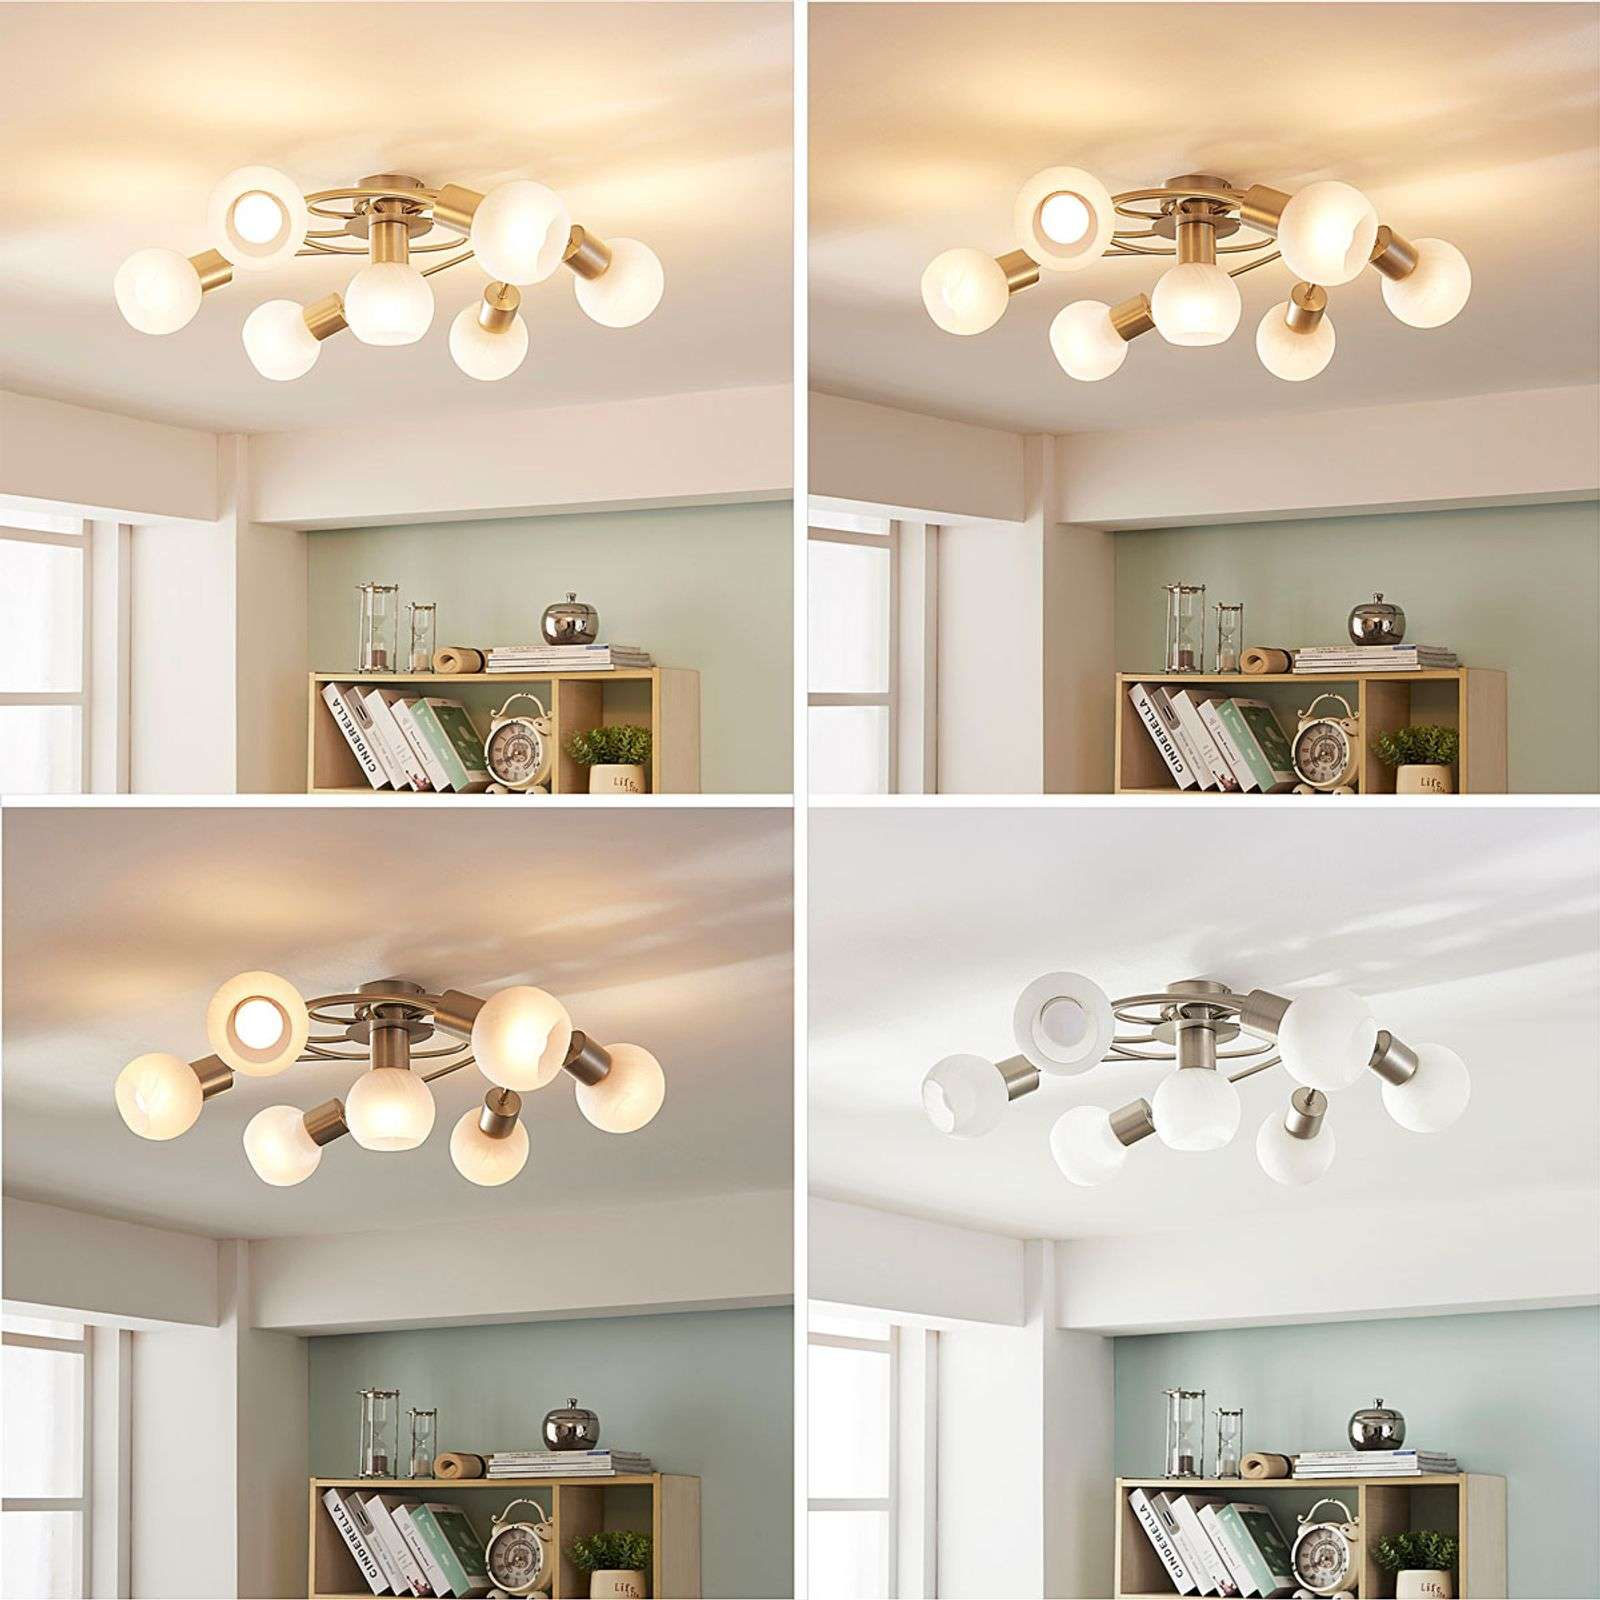 Grand plafonnier LED Tanos, dimmable, 7 lampes